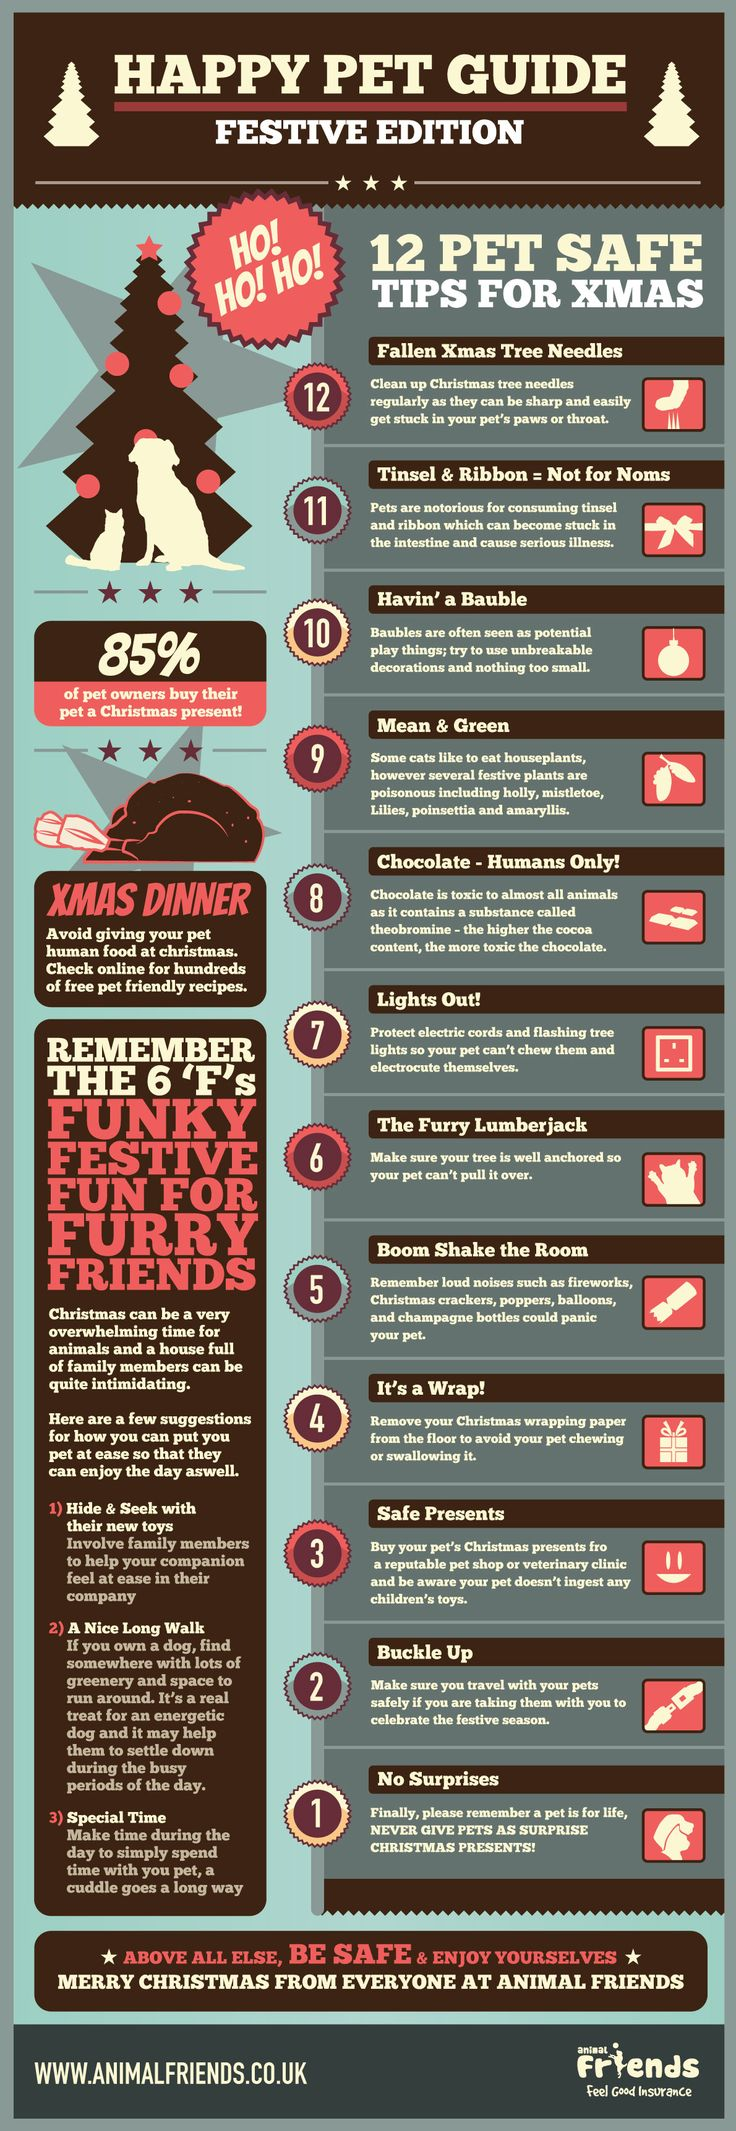 Help keep your pet safe this Christmas by reading our Christmas pet safety tips guide!